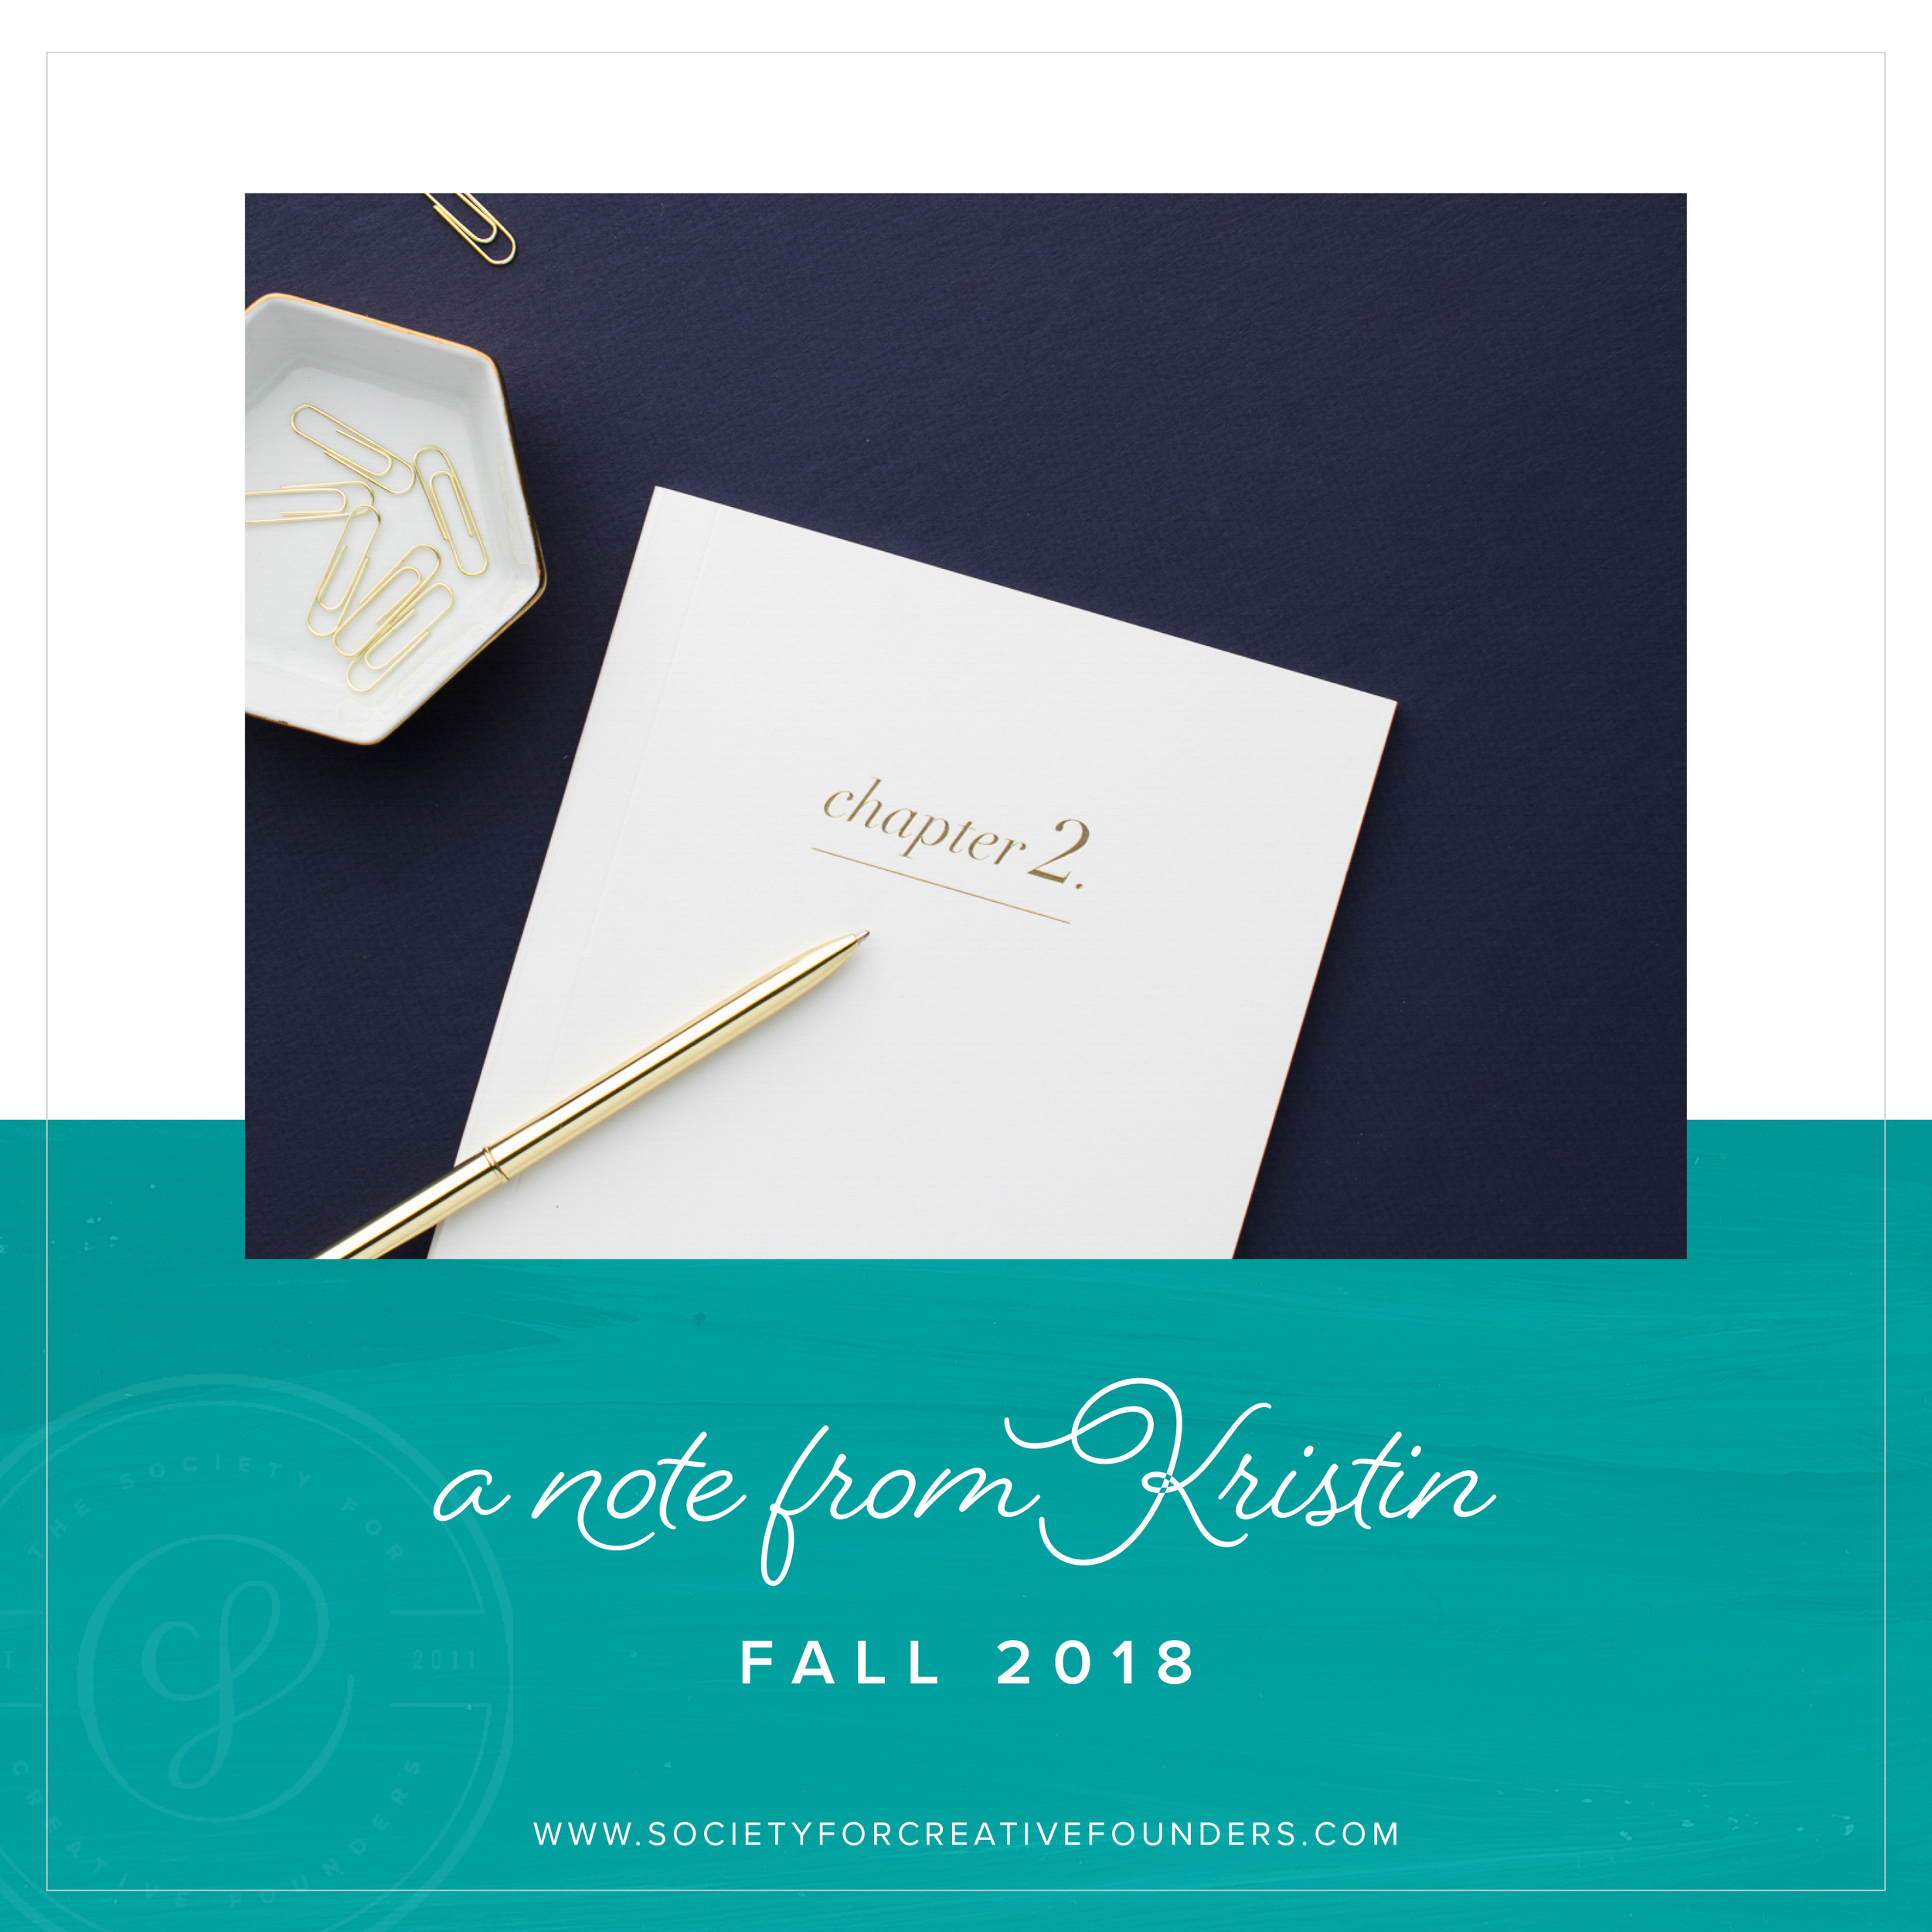 A Note from Kristin - Society for Creative Founders, Fall 2018